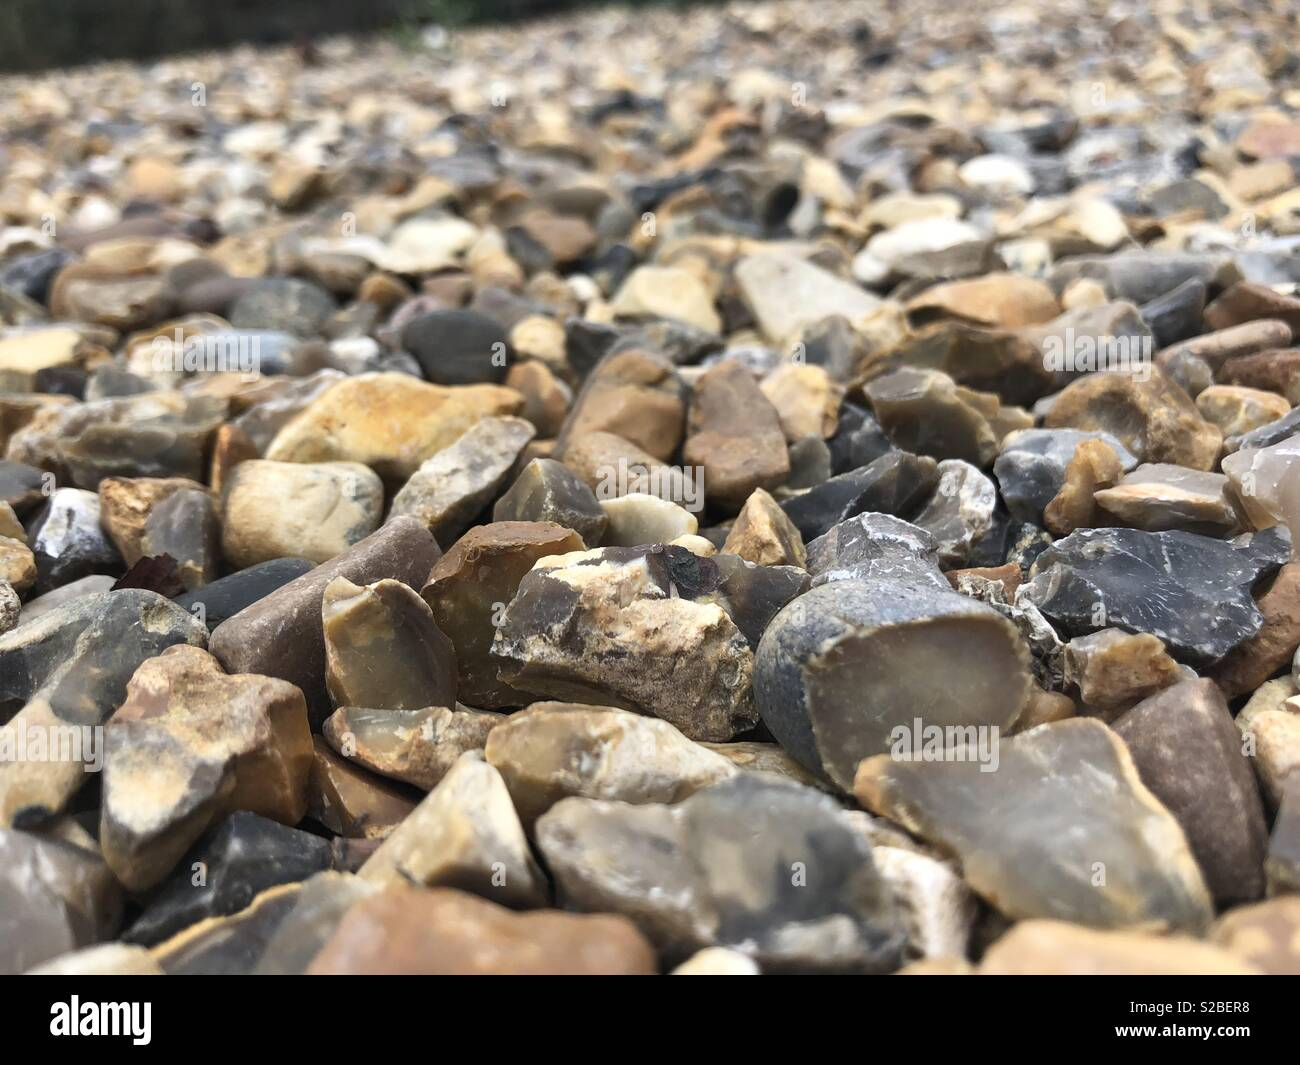 Rocks.. with the softest hand, you can shape hardest rocks. - Stock Image